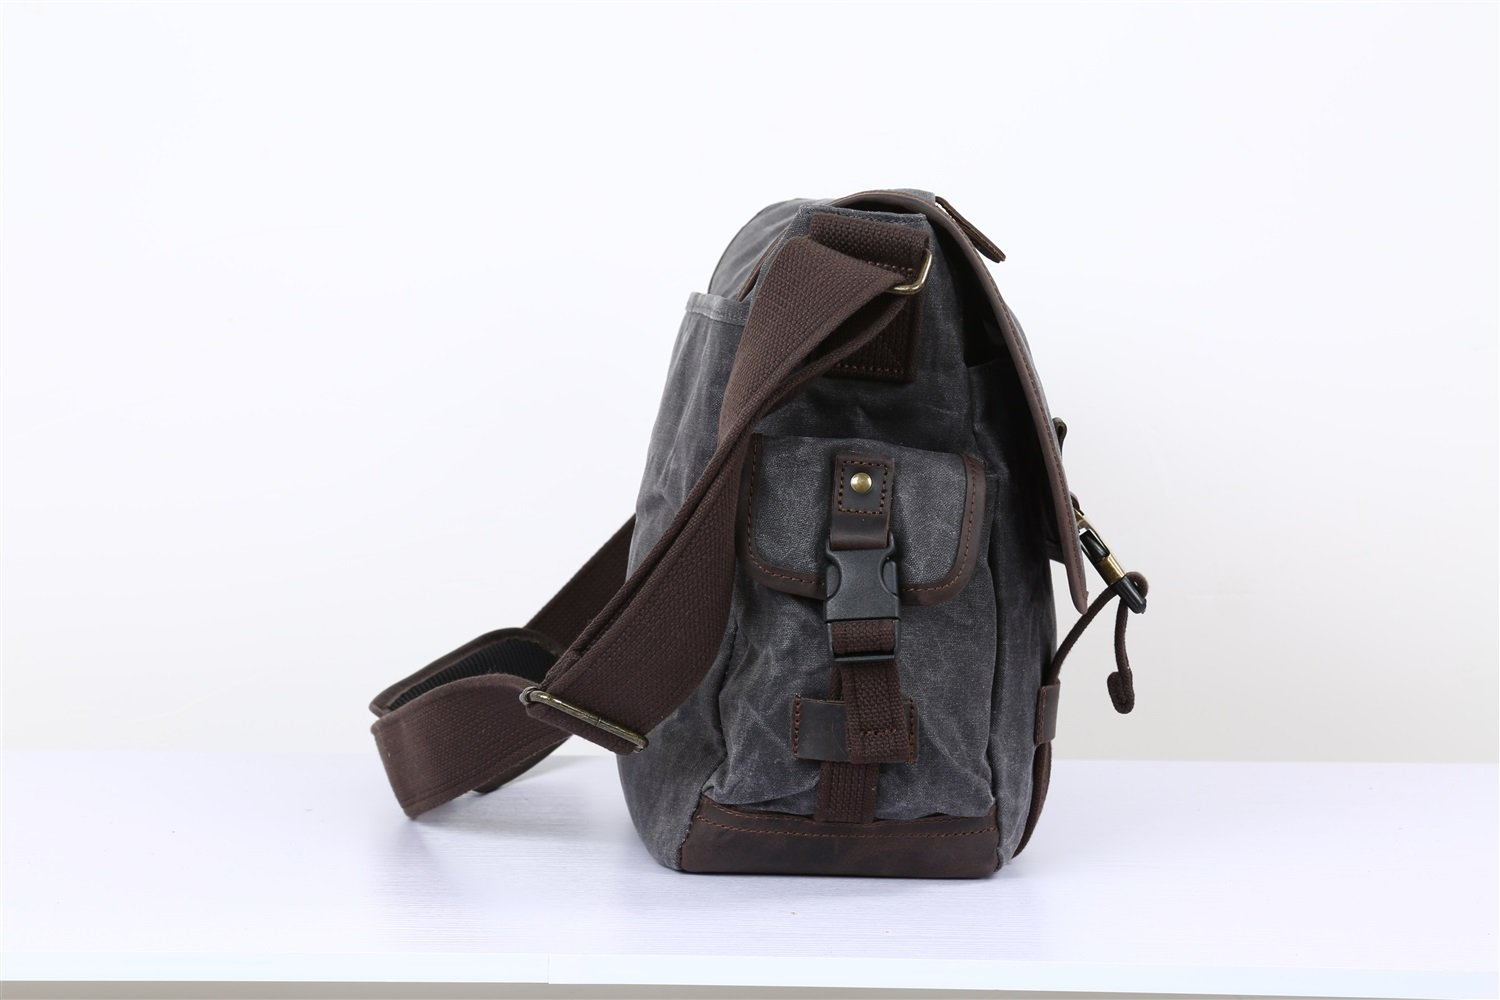 Elegdy Mens Crossbody Bag Crazy Horse Leather Canvas Oil Canvas Mens Bag Large Capacity Waterproof Outdoor Travel Backpack Fashion Color : Chrome, Size : M